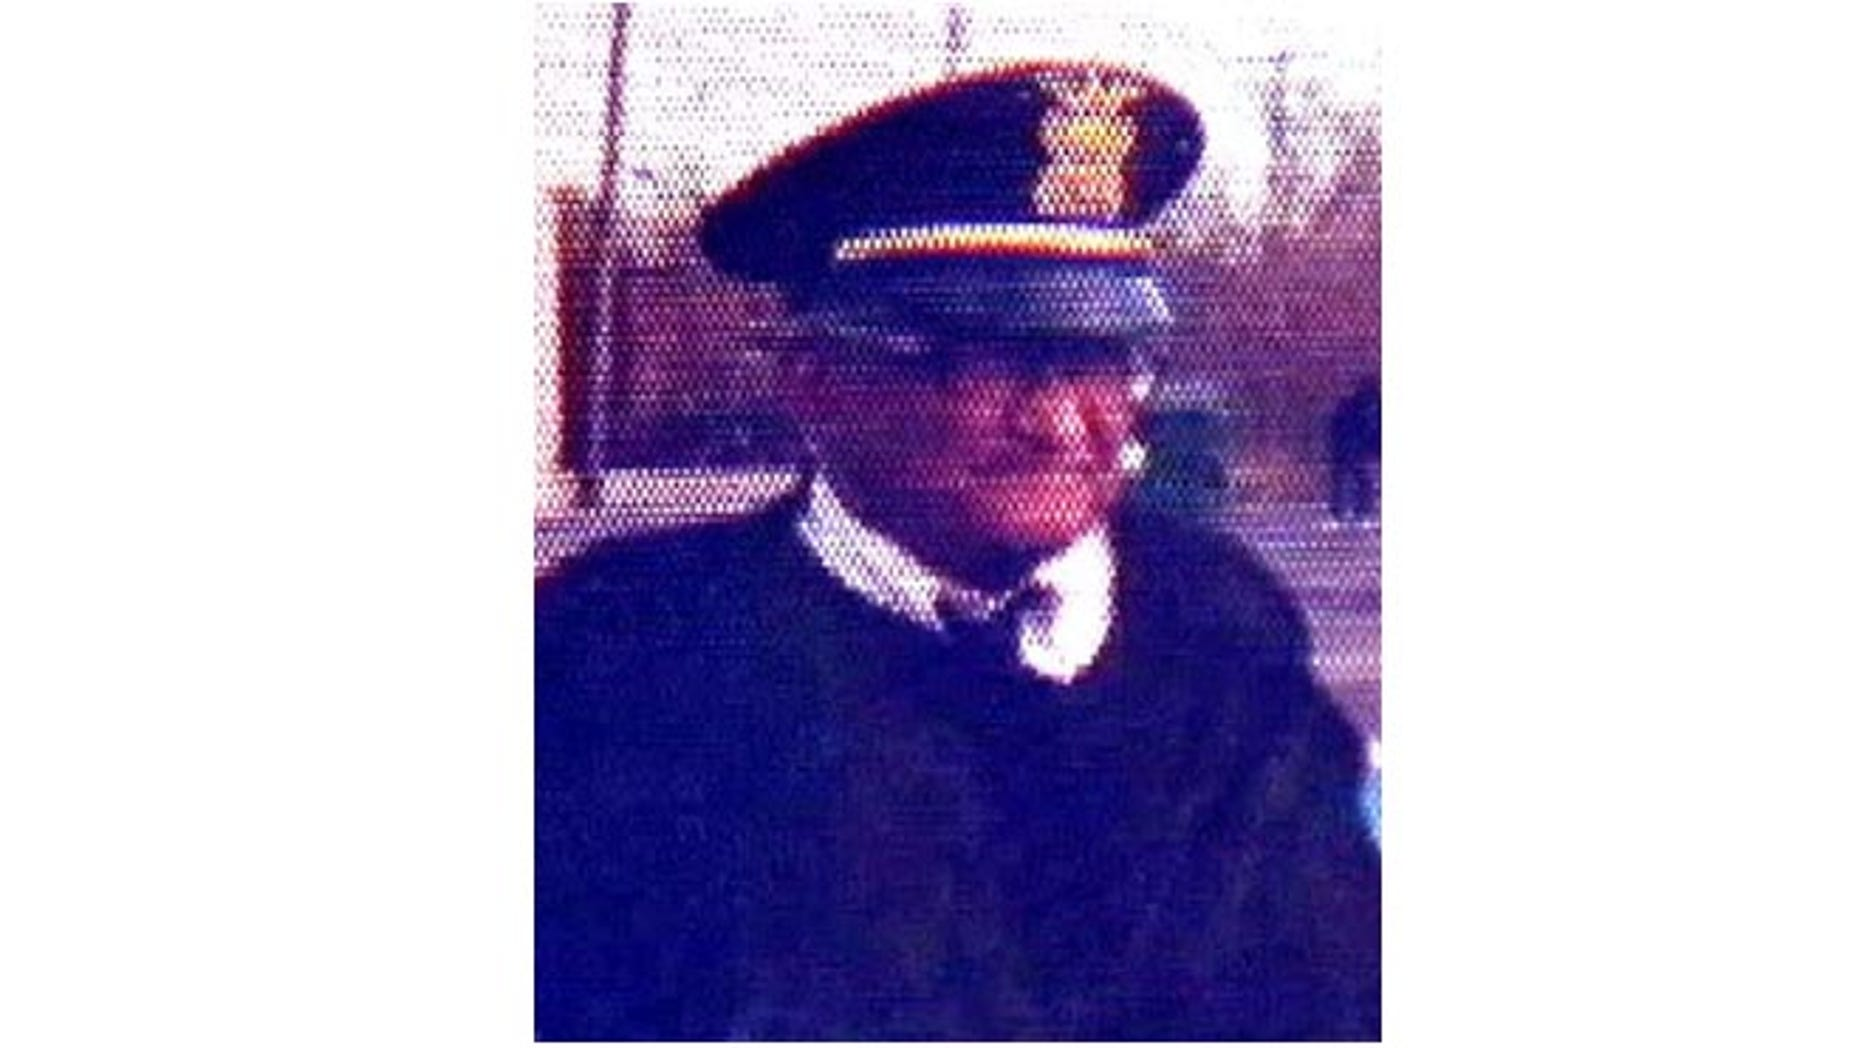 This photo, obtained by Fox affiliate WJBK-TV, shows 84-year-old Joseph Lewis Jr., a security guard and Korean War veteran who was shot and killed last week outside a Detroit church.